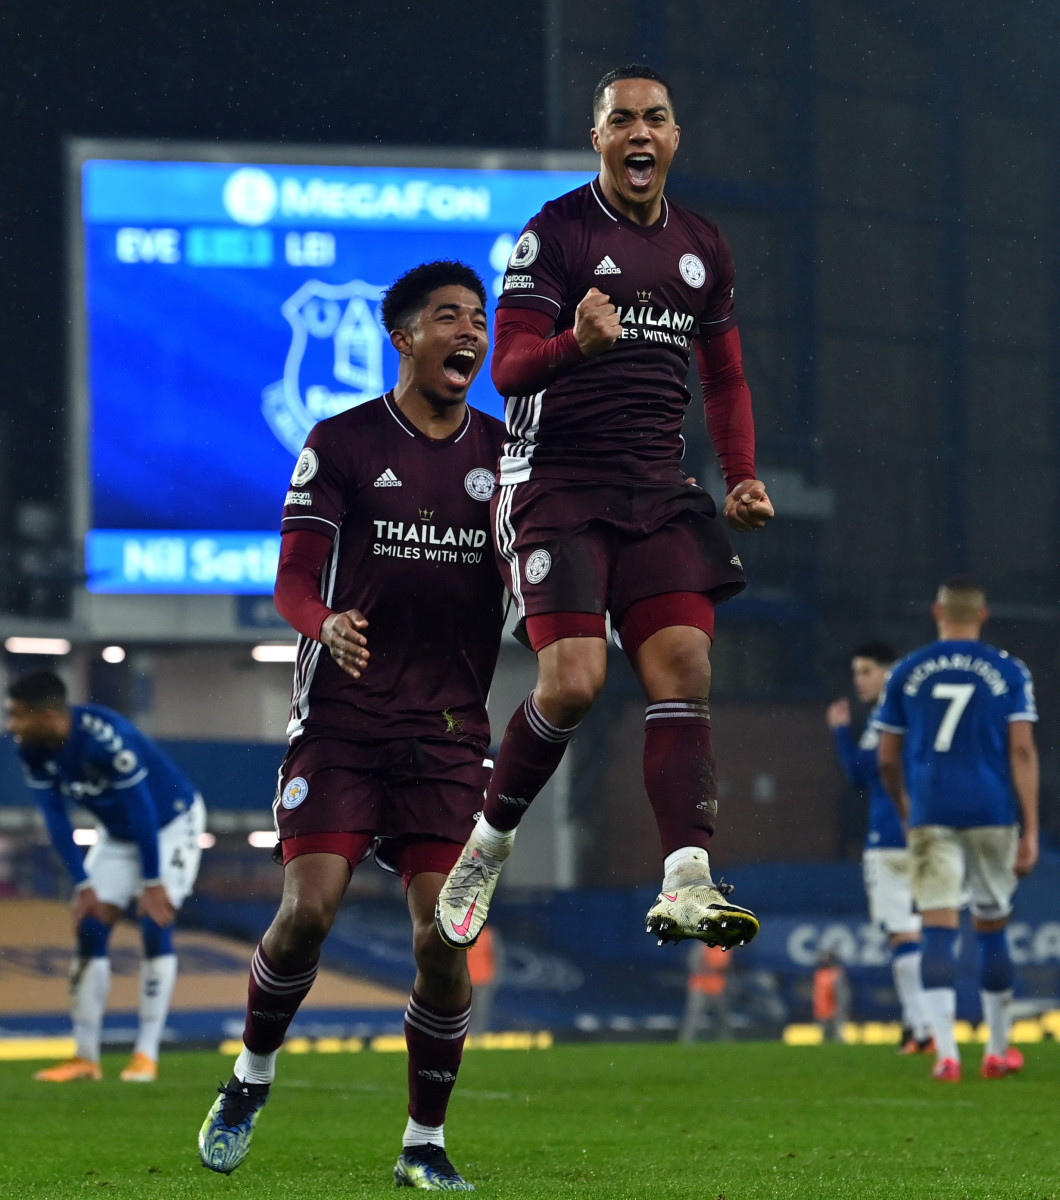 Tielemans has been key to Leicester's excellent form this season